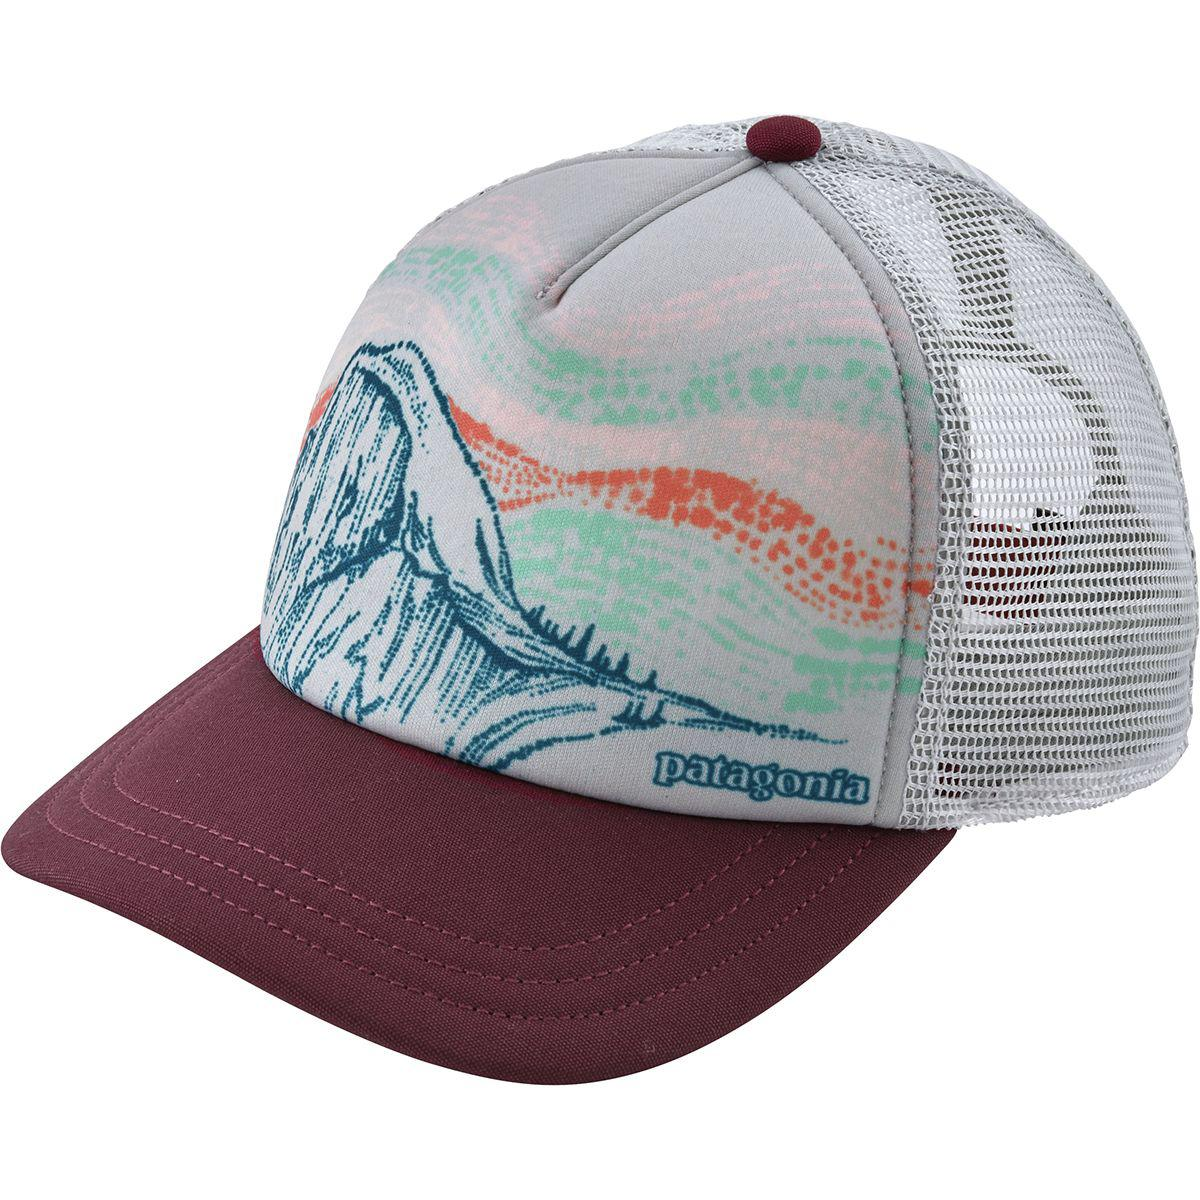 5ffead7d8ea Patagonia - Multicolor Raindrop Peak Interstate Hat - Lyst. View fullscreen